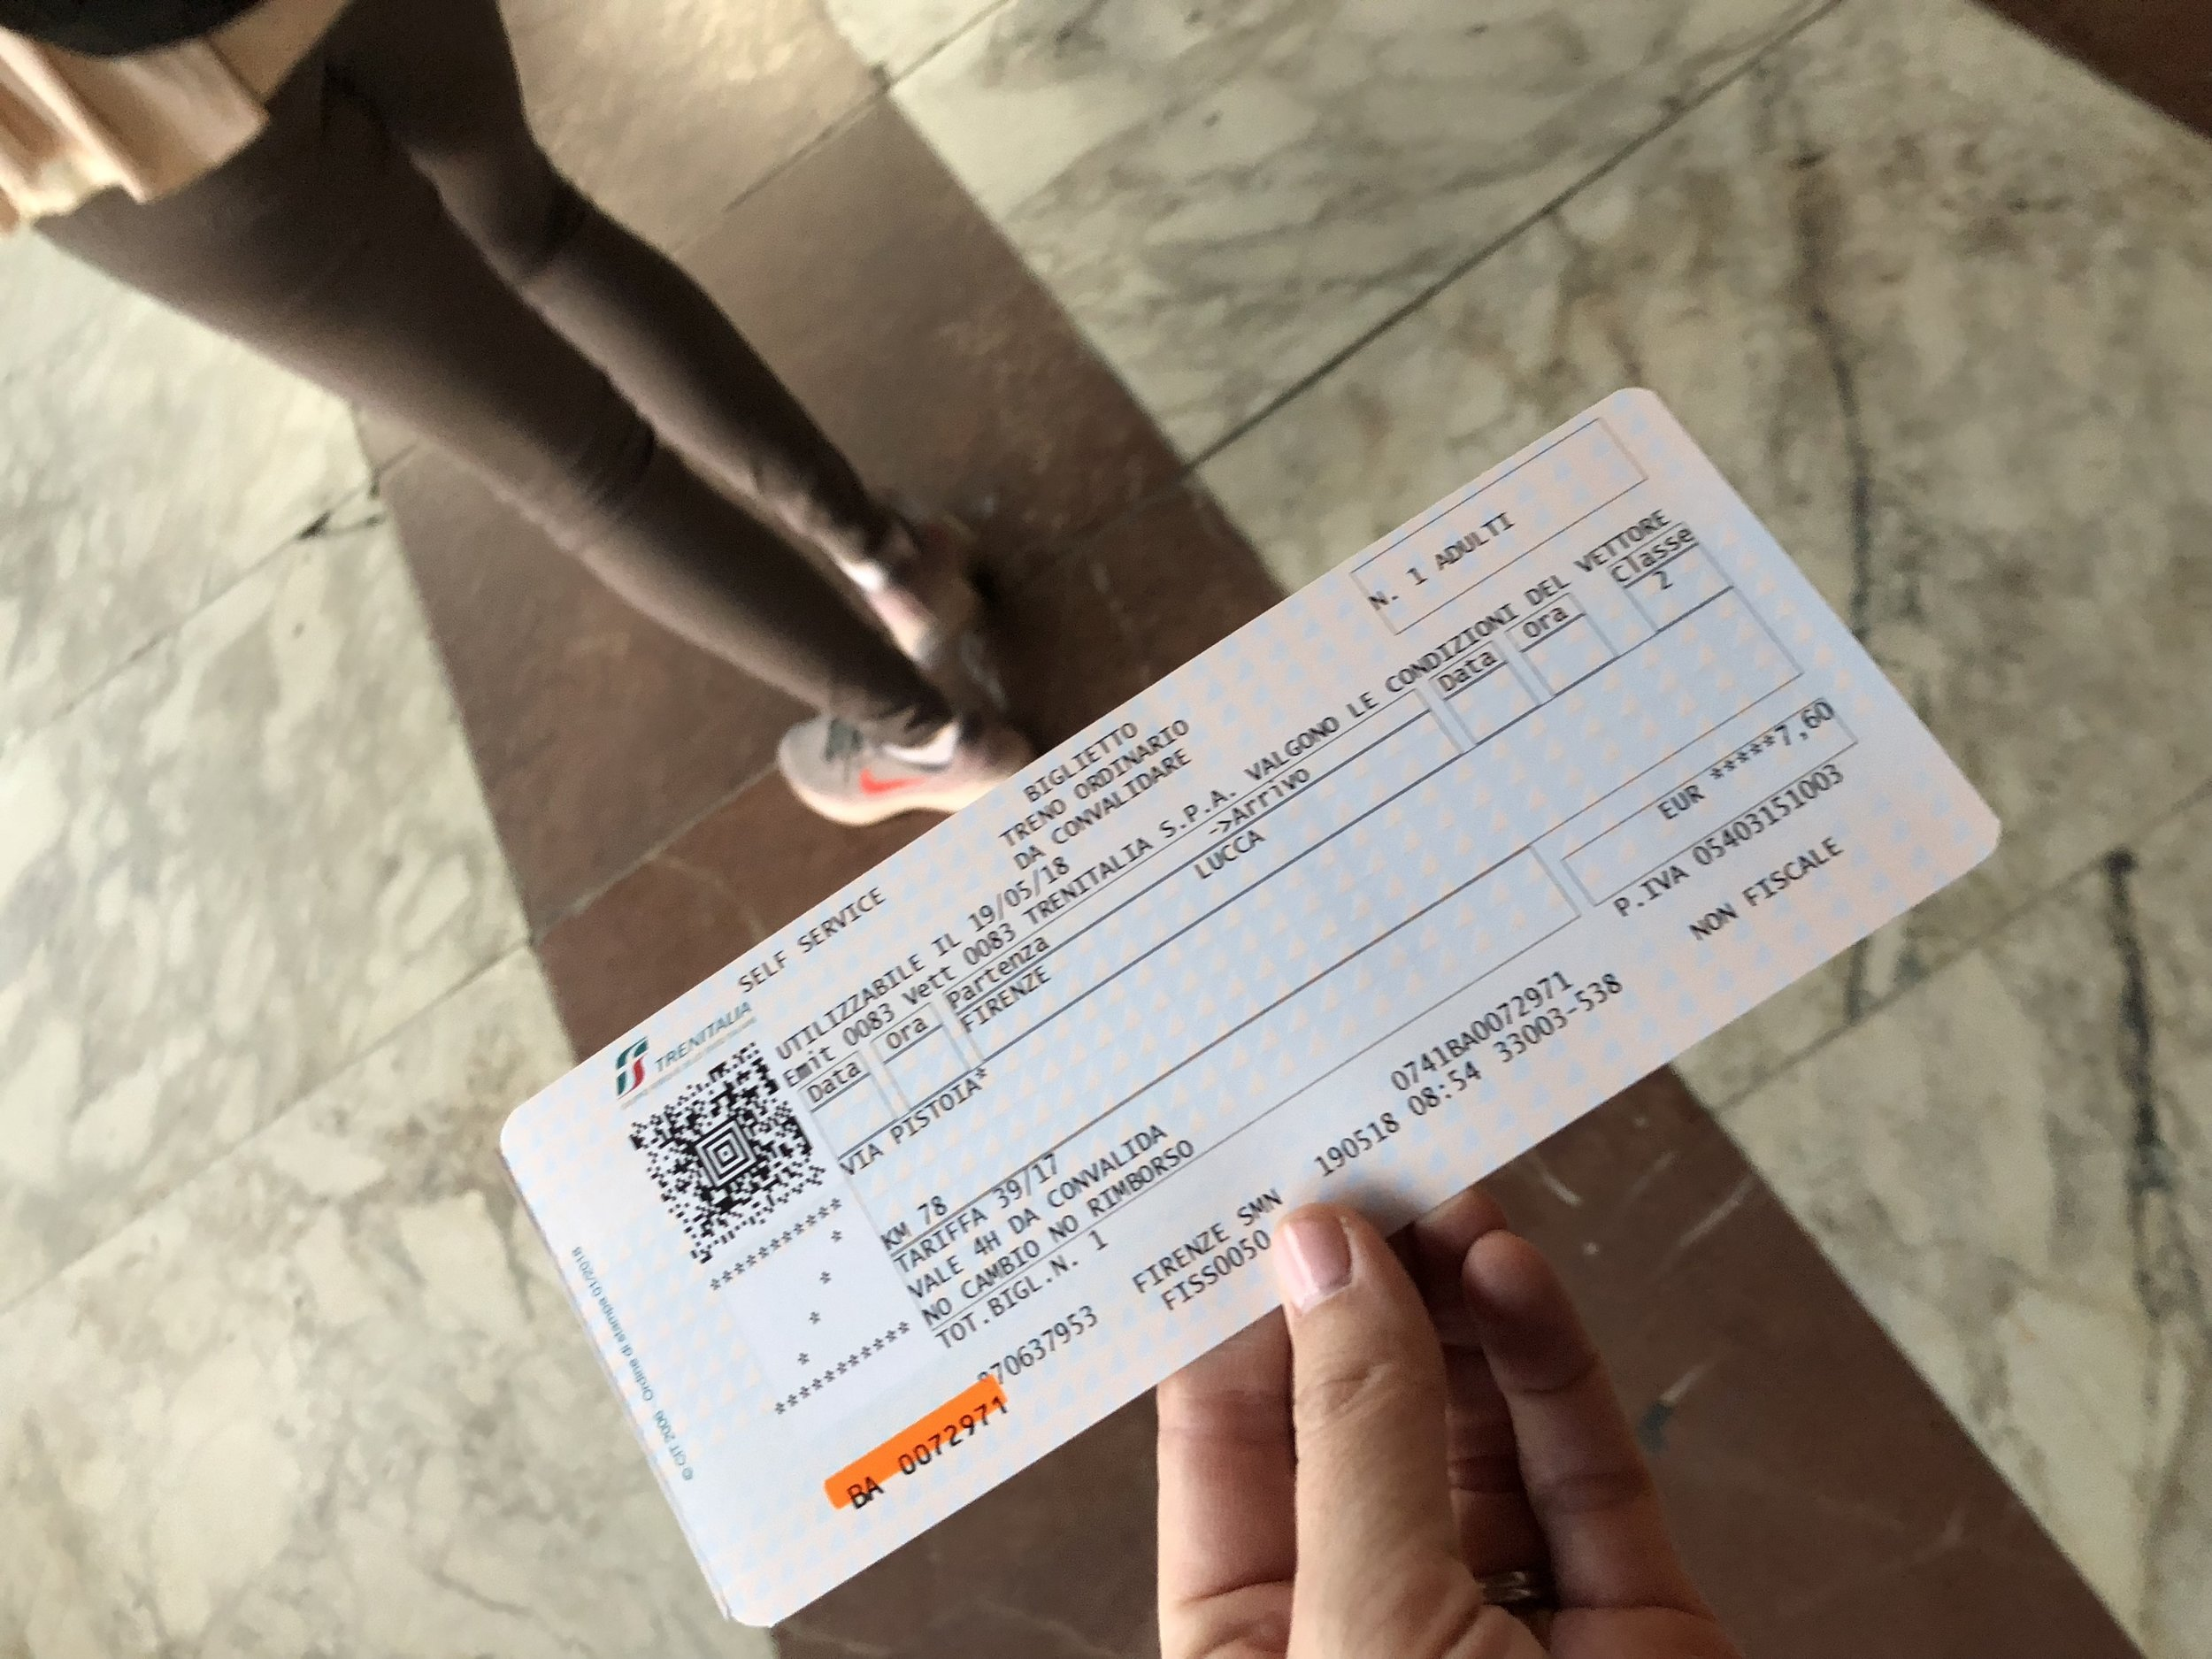 Train tickets for a trip to Lucca